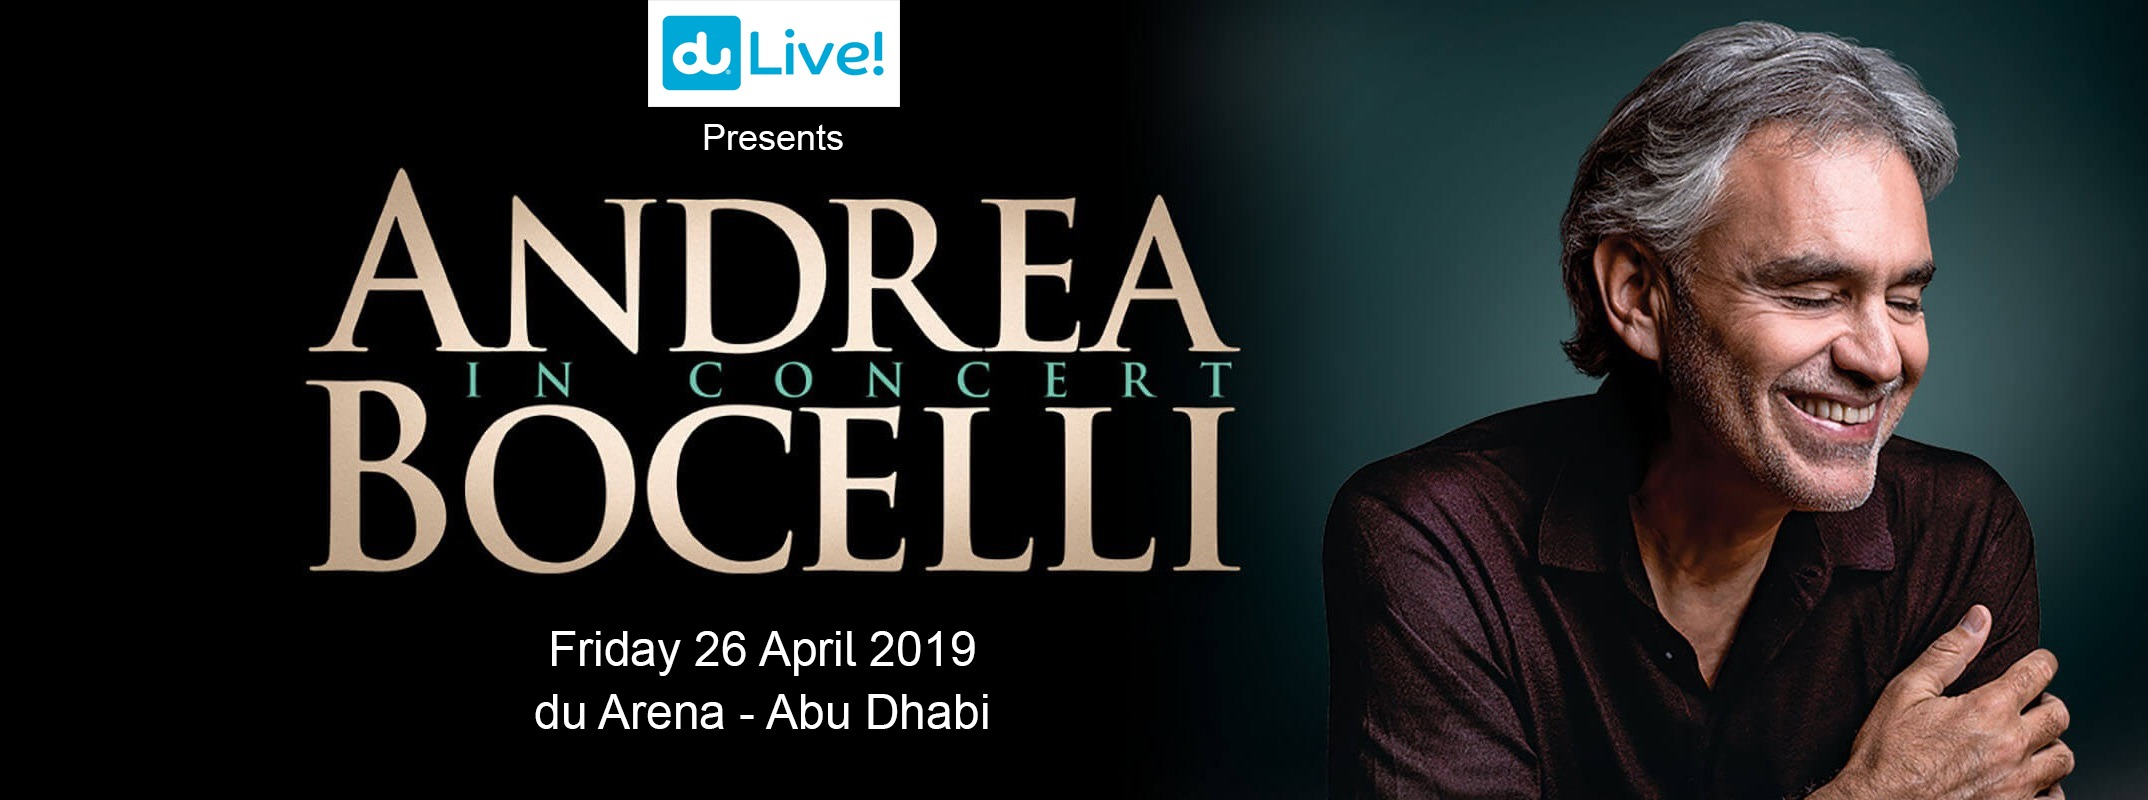 Andrea Bocelli concert at du Arena - Coming Soon in UAE